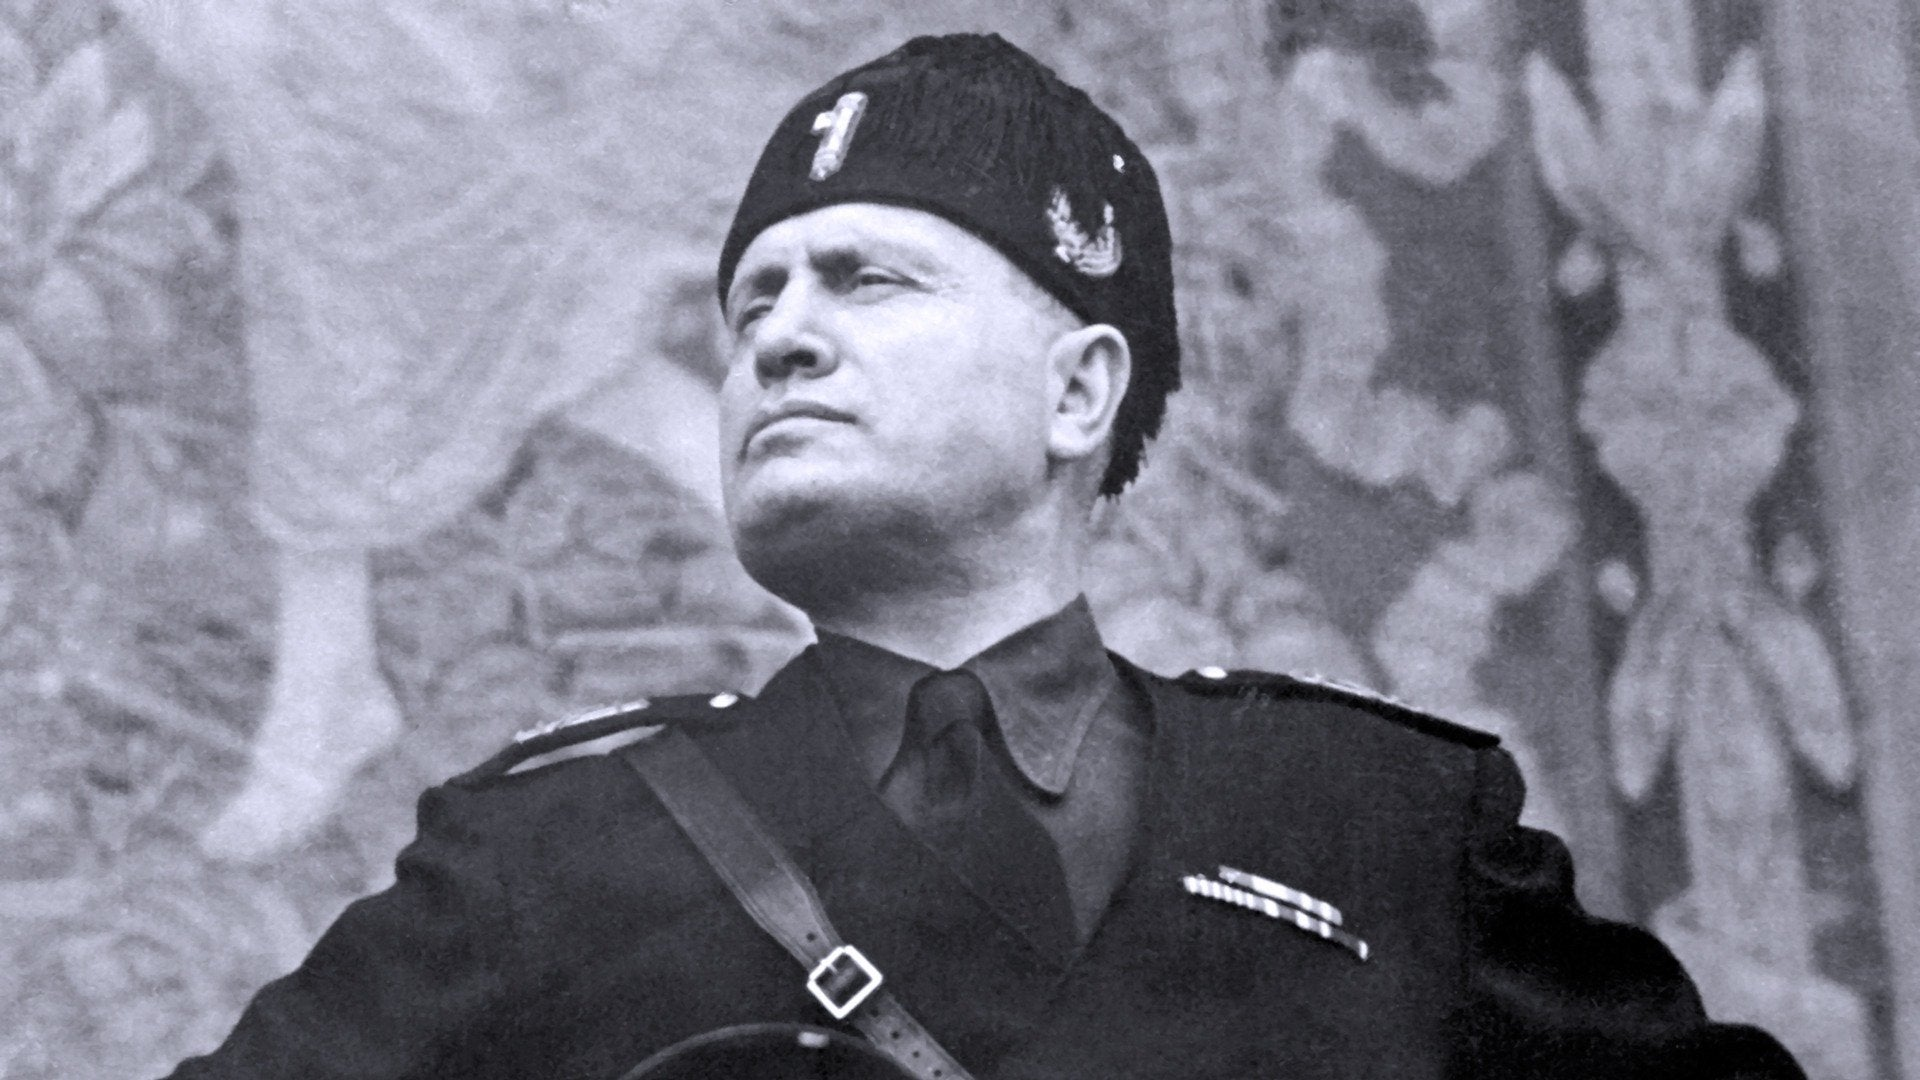 The Death of Mussolini